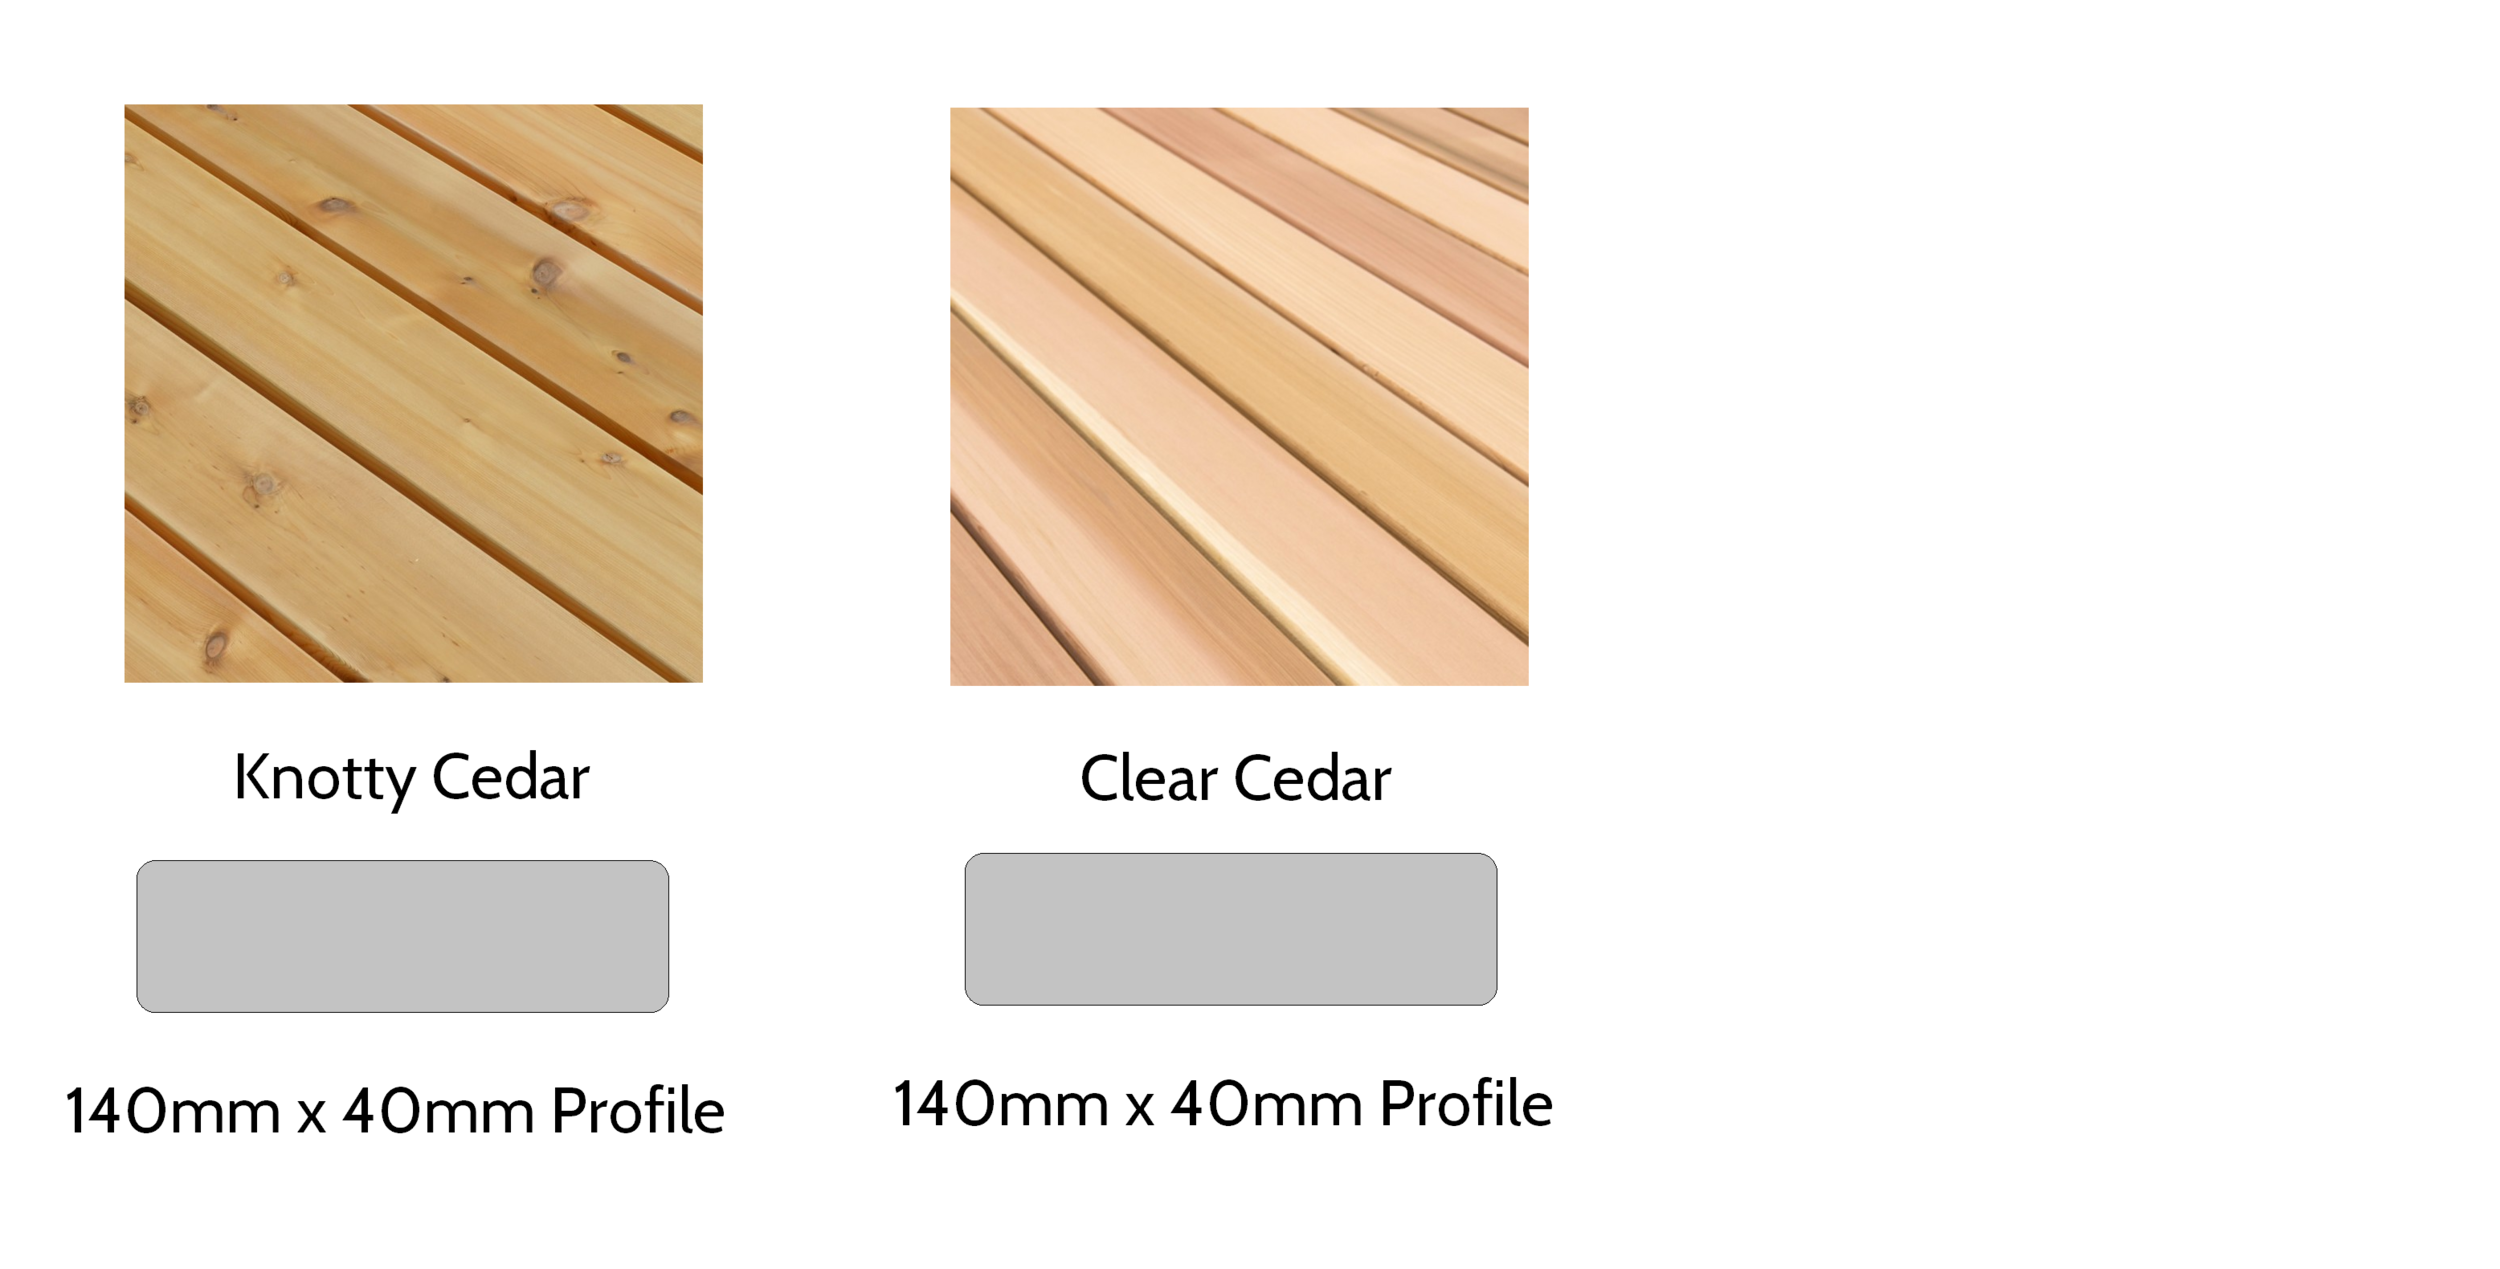 Cedar Decking - Available in knotty and clear grades with an anti-slip treatment. Matches perfectly to cedar clad garden rooms and with a very long life expectancy due to the natural properties of cedar.